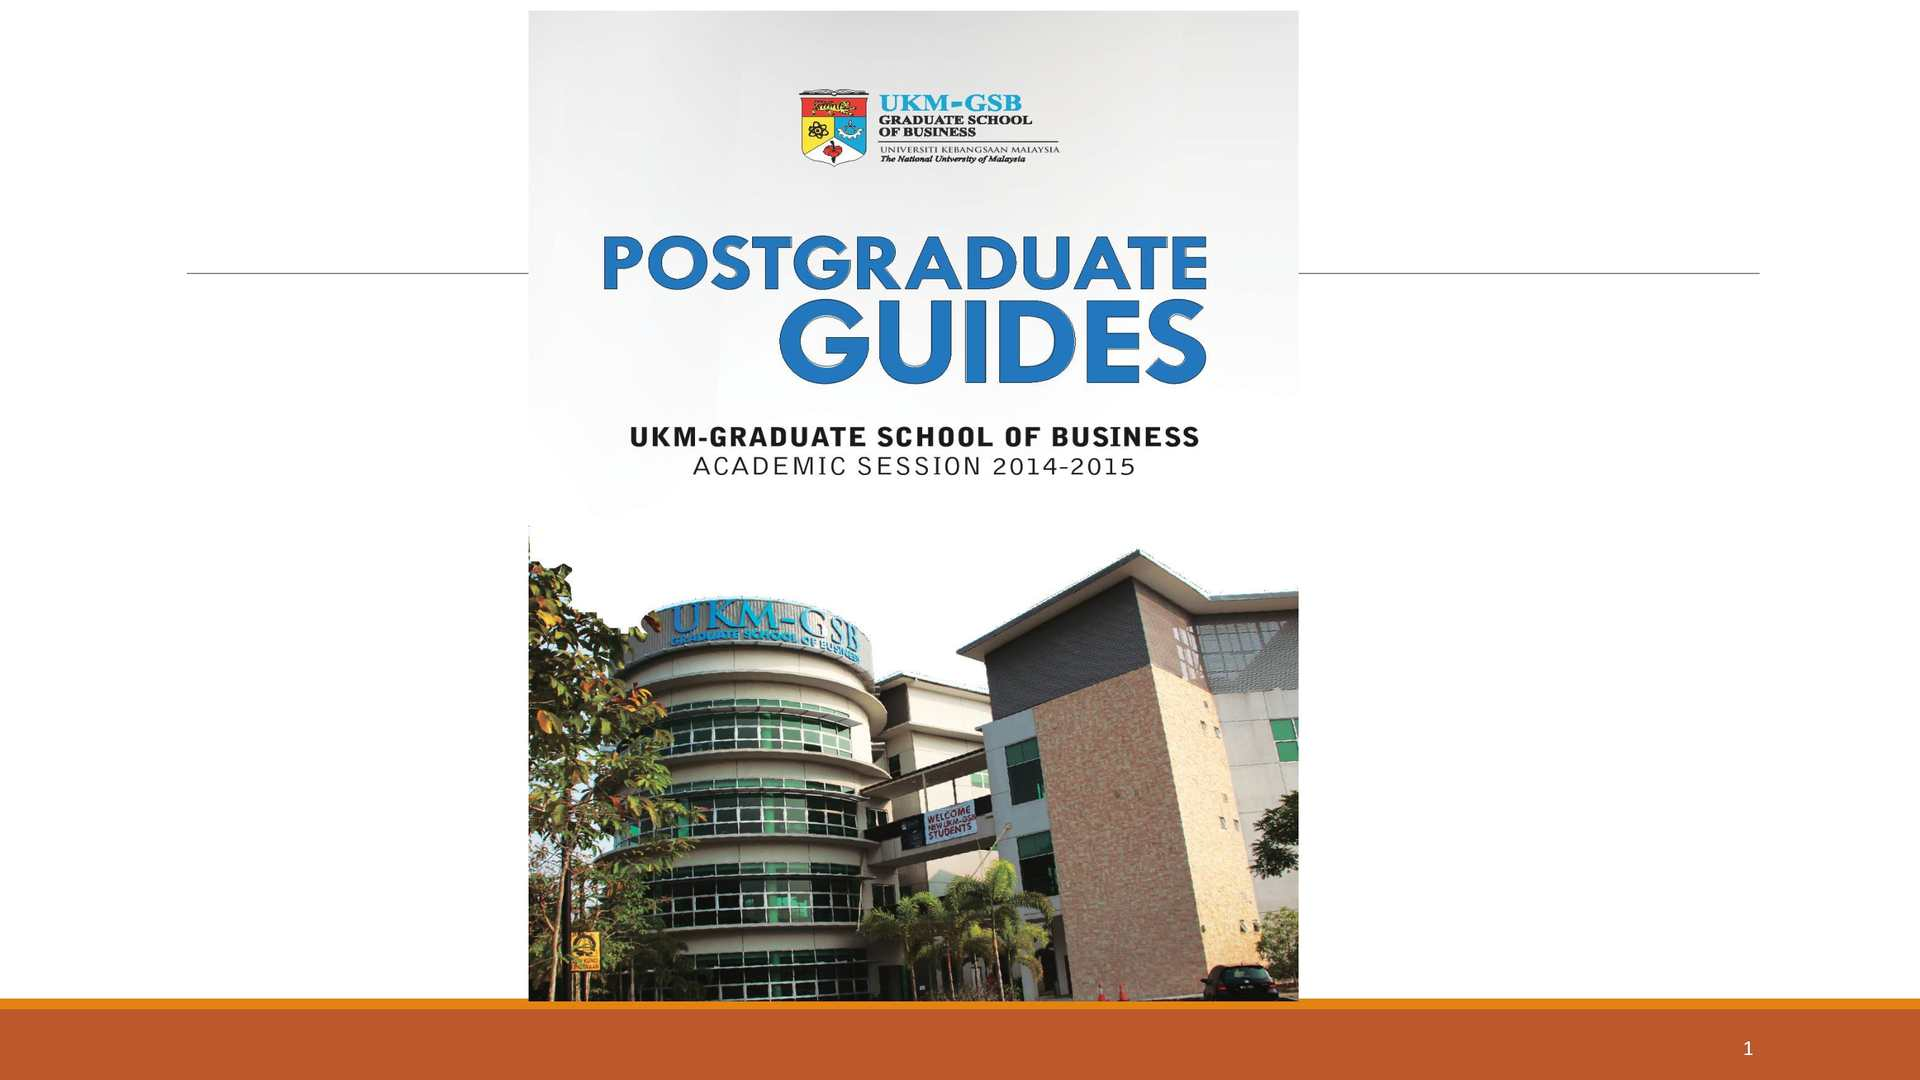 phd coursework ukm Essay writing course ukm phd coursework ukm - topenglishserviceessaylife phd coursework ukm custom resume writing your objective what do you receive with essay.